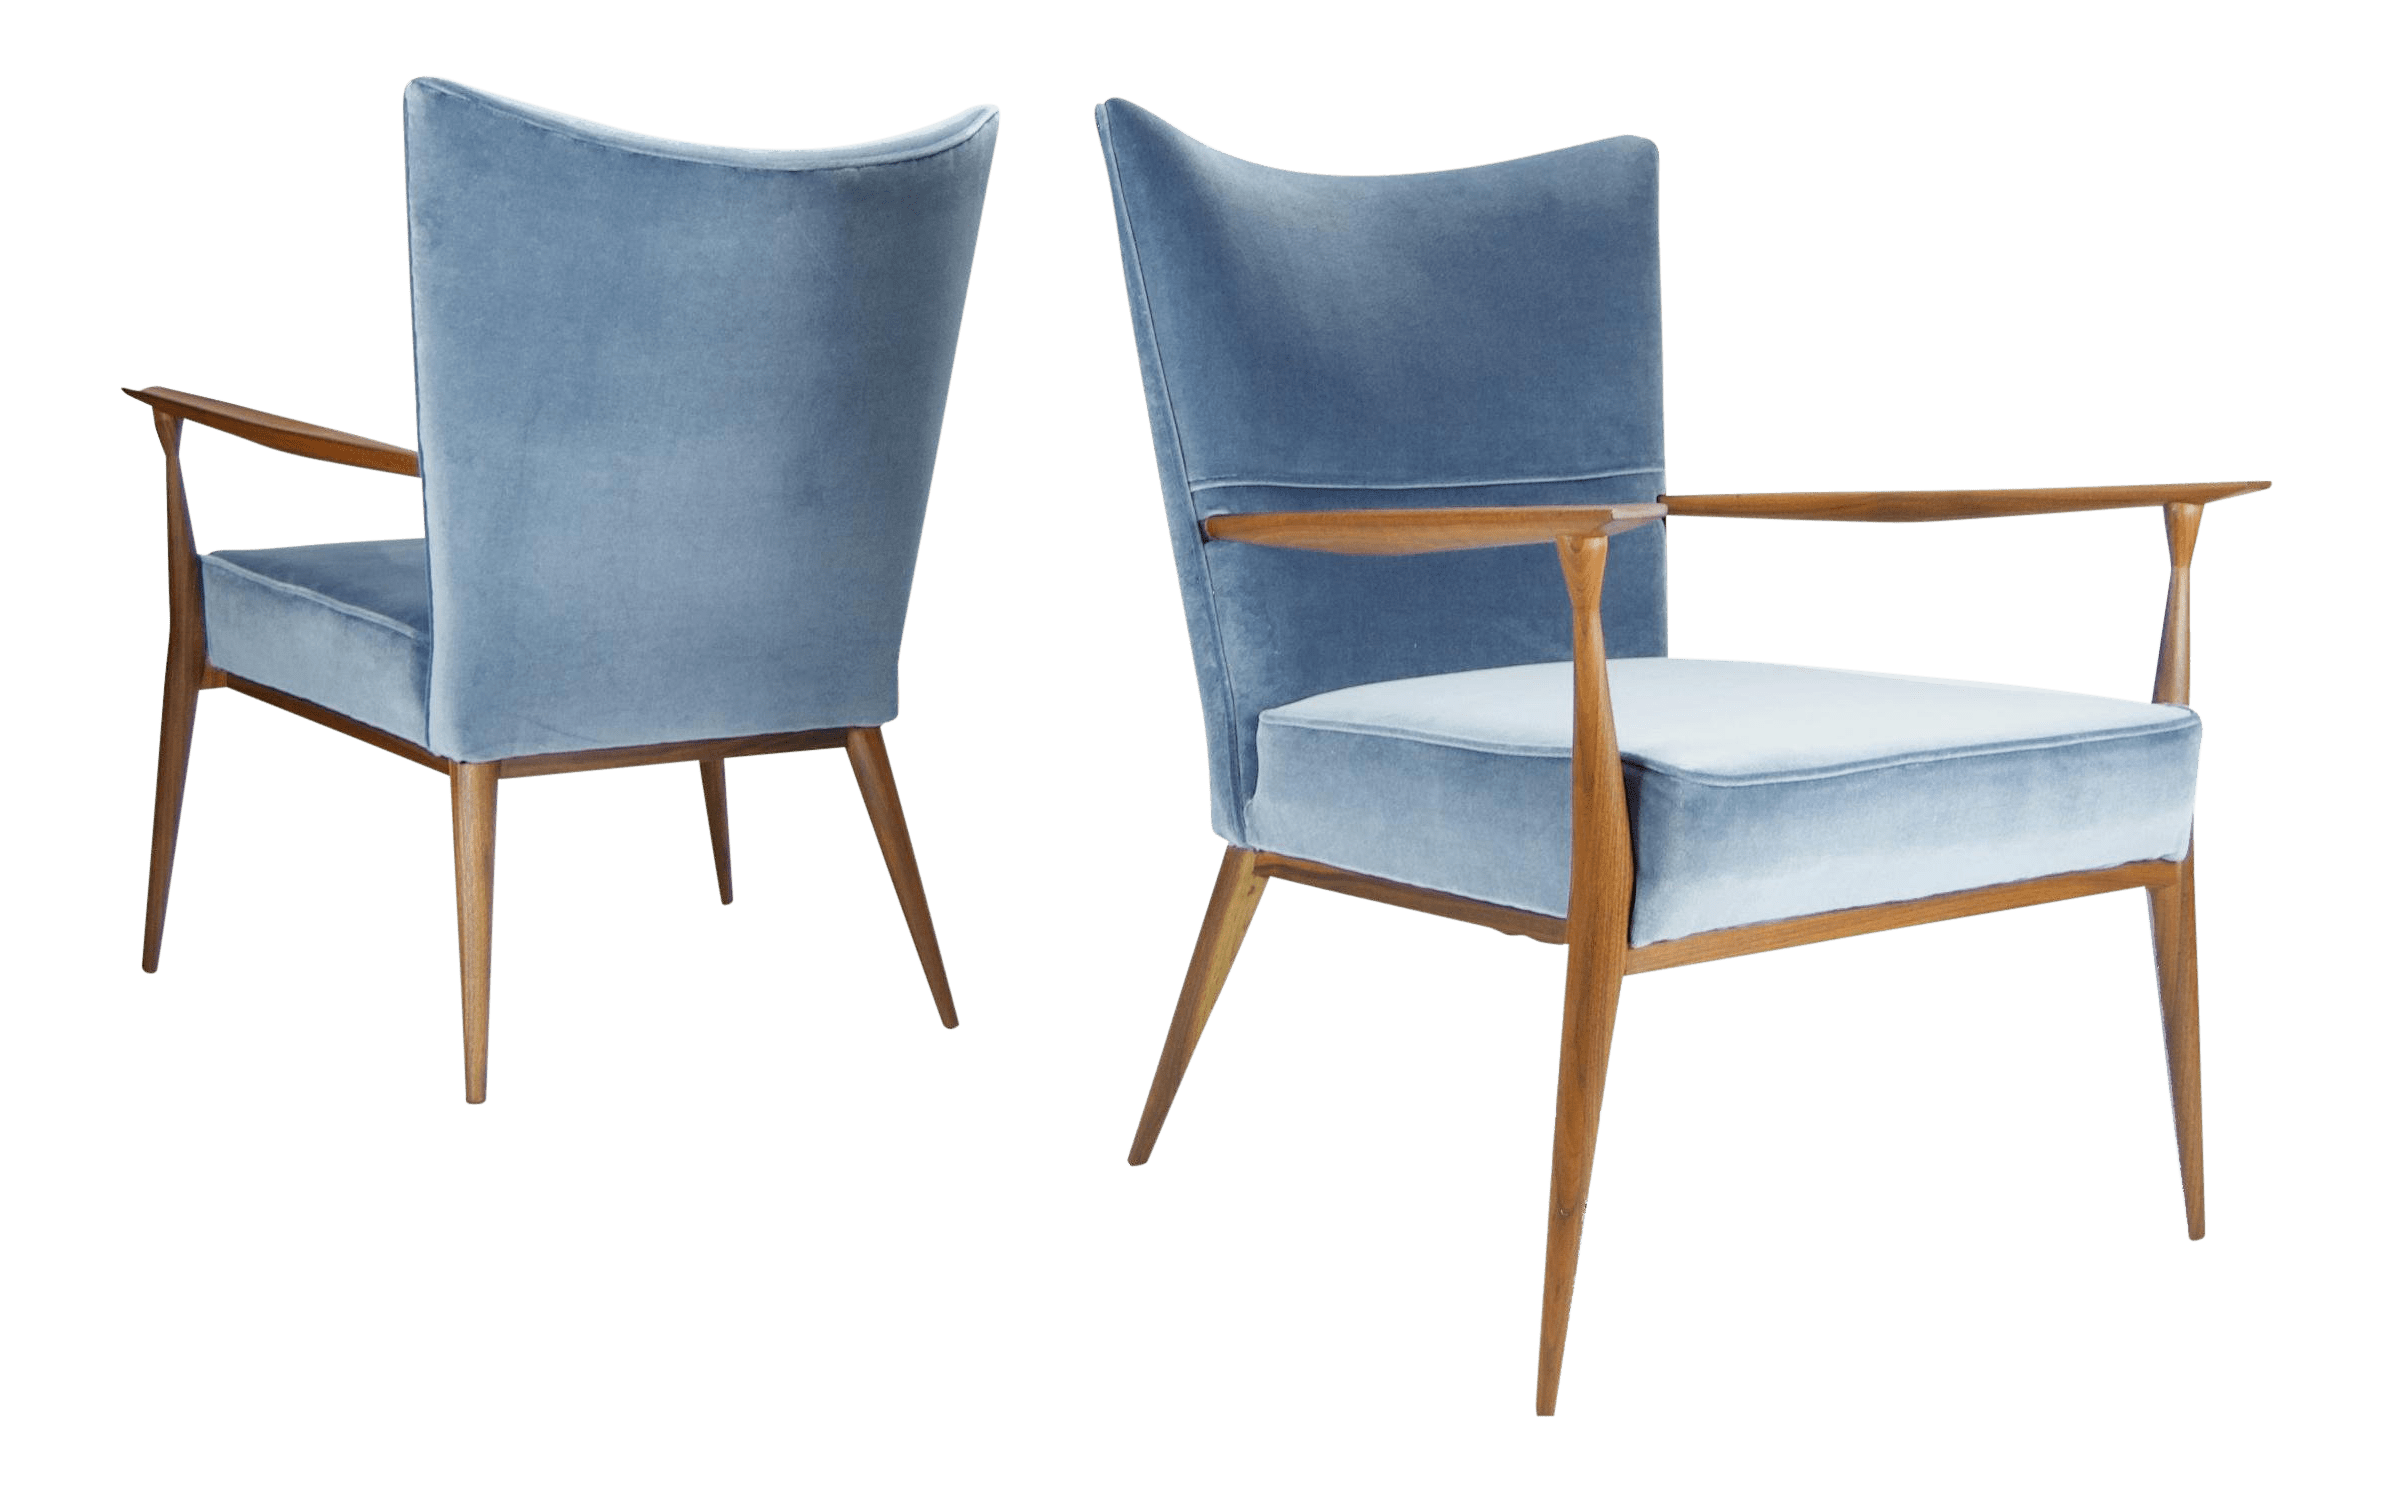 Paul Mccobb Chairs 1950s Vintage Paul Mccobb For Directional Lounge Chairs A Pair